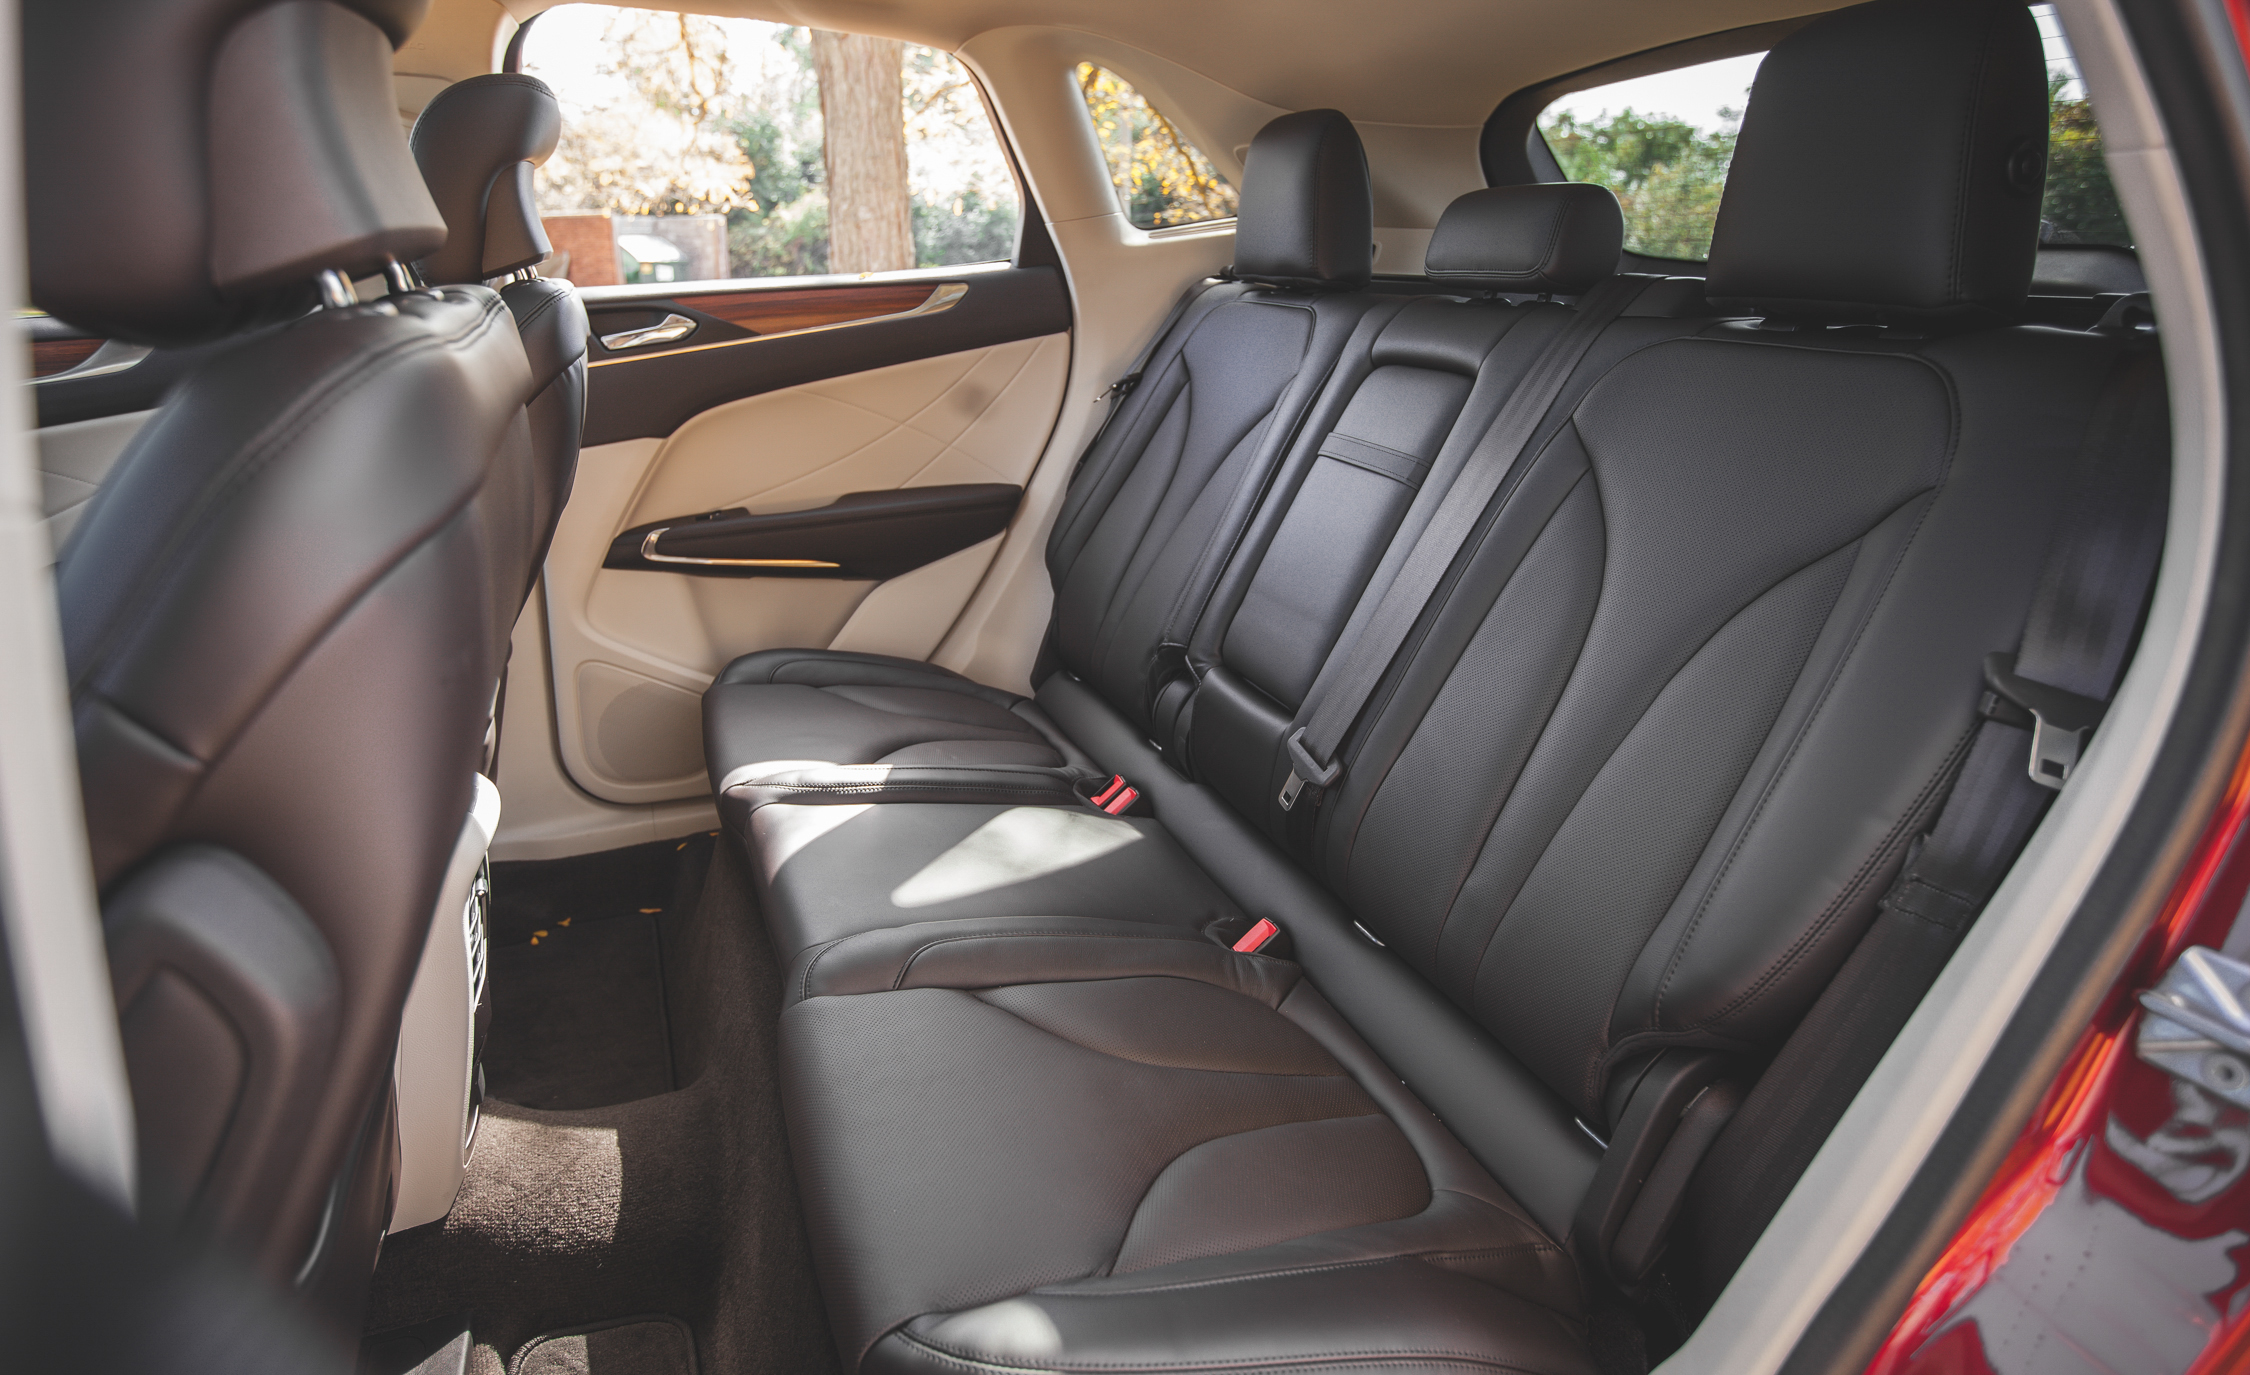 2015 Lincoln MKC 2.3 EcoBoost AWD Rear Seats Interior